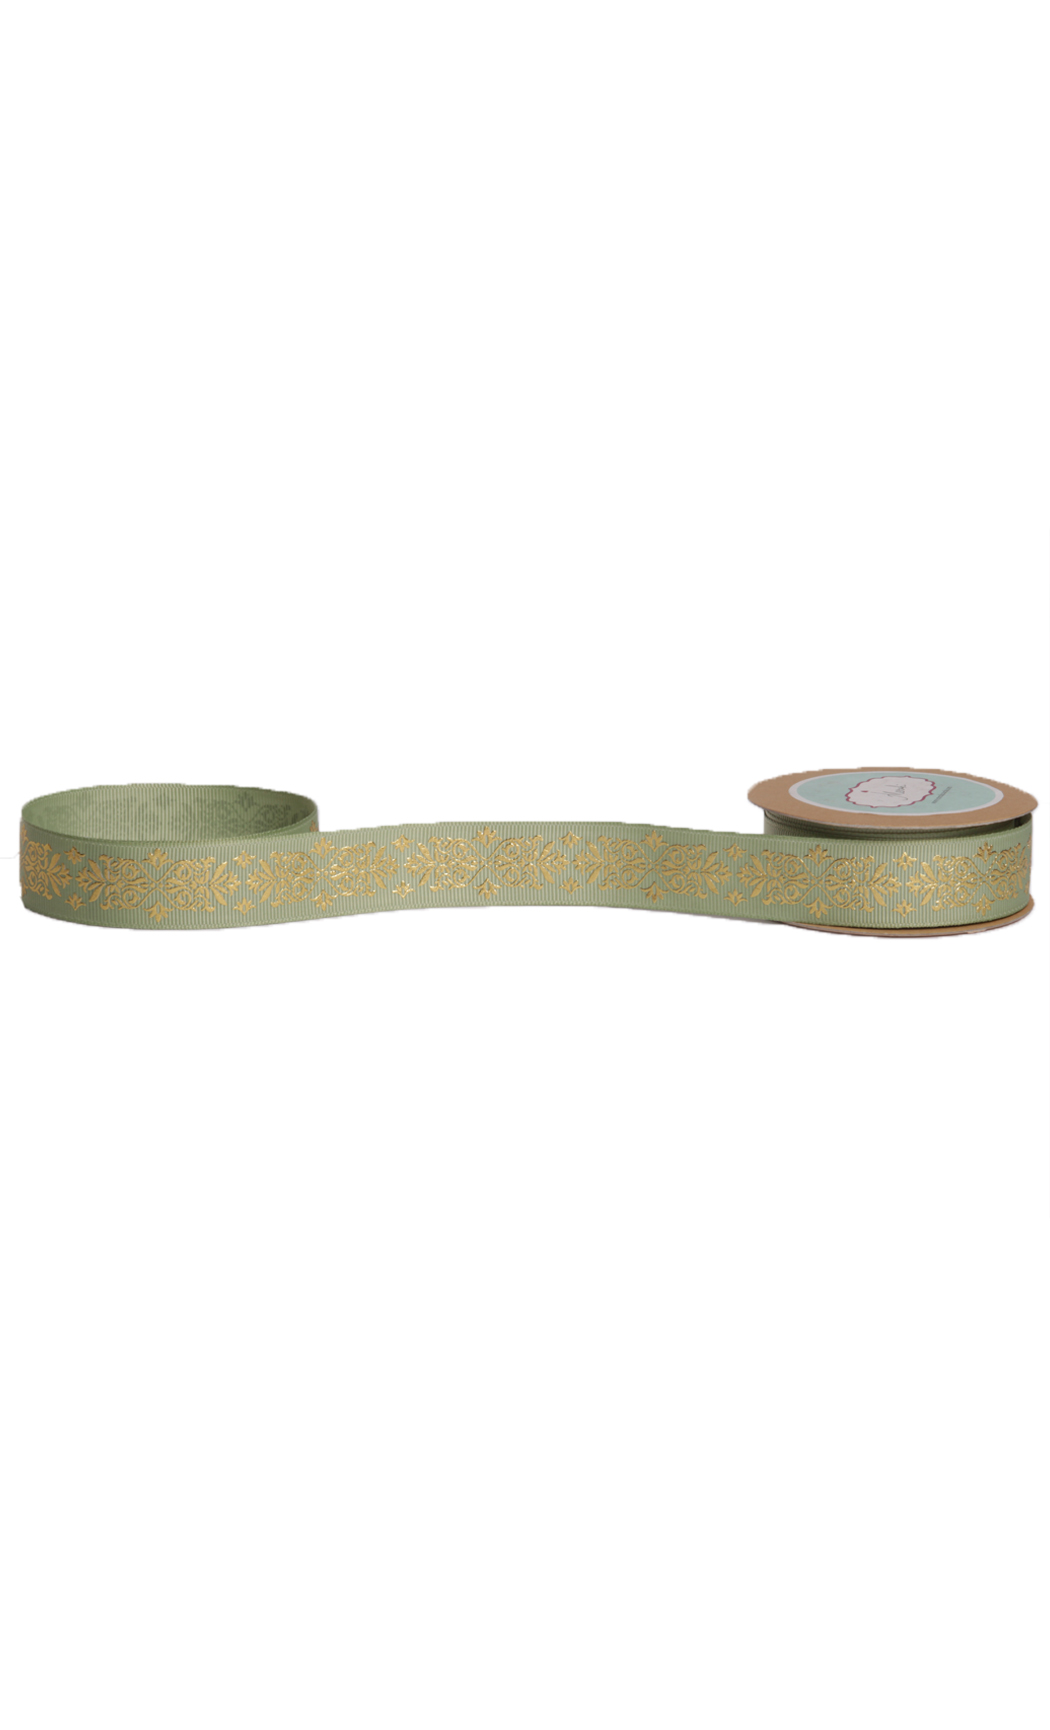 Moss Green Gold Foiled Ribbon - Buy Online